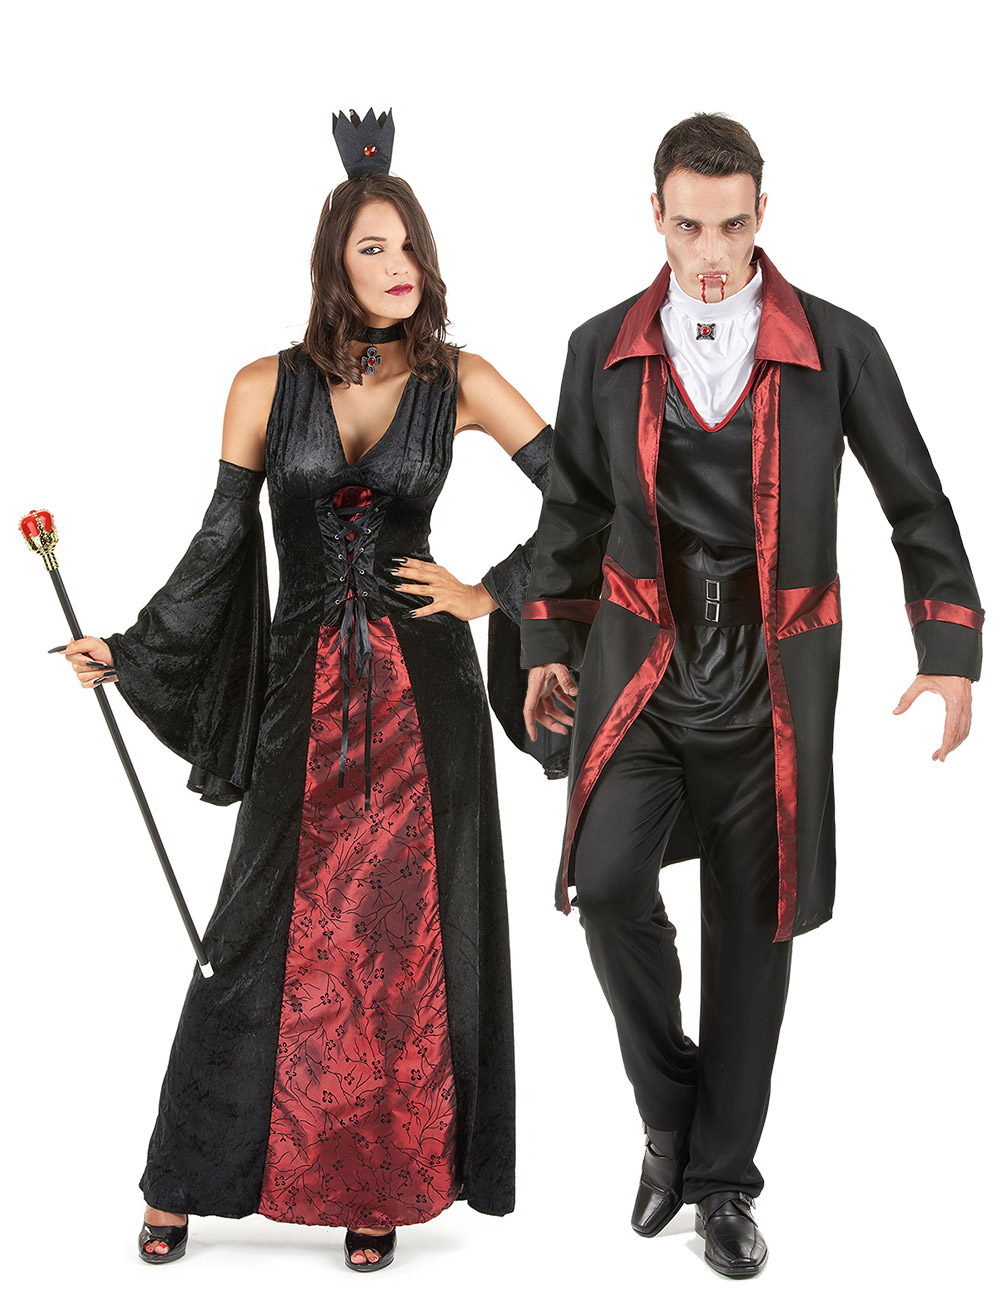 d guisement de couple vampire rouge et noir halloween deguise toi achat de d guisements couples. Black Bedroom Furniture Sets. Home Design Ideas